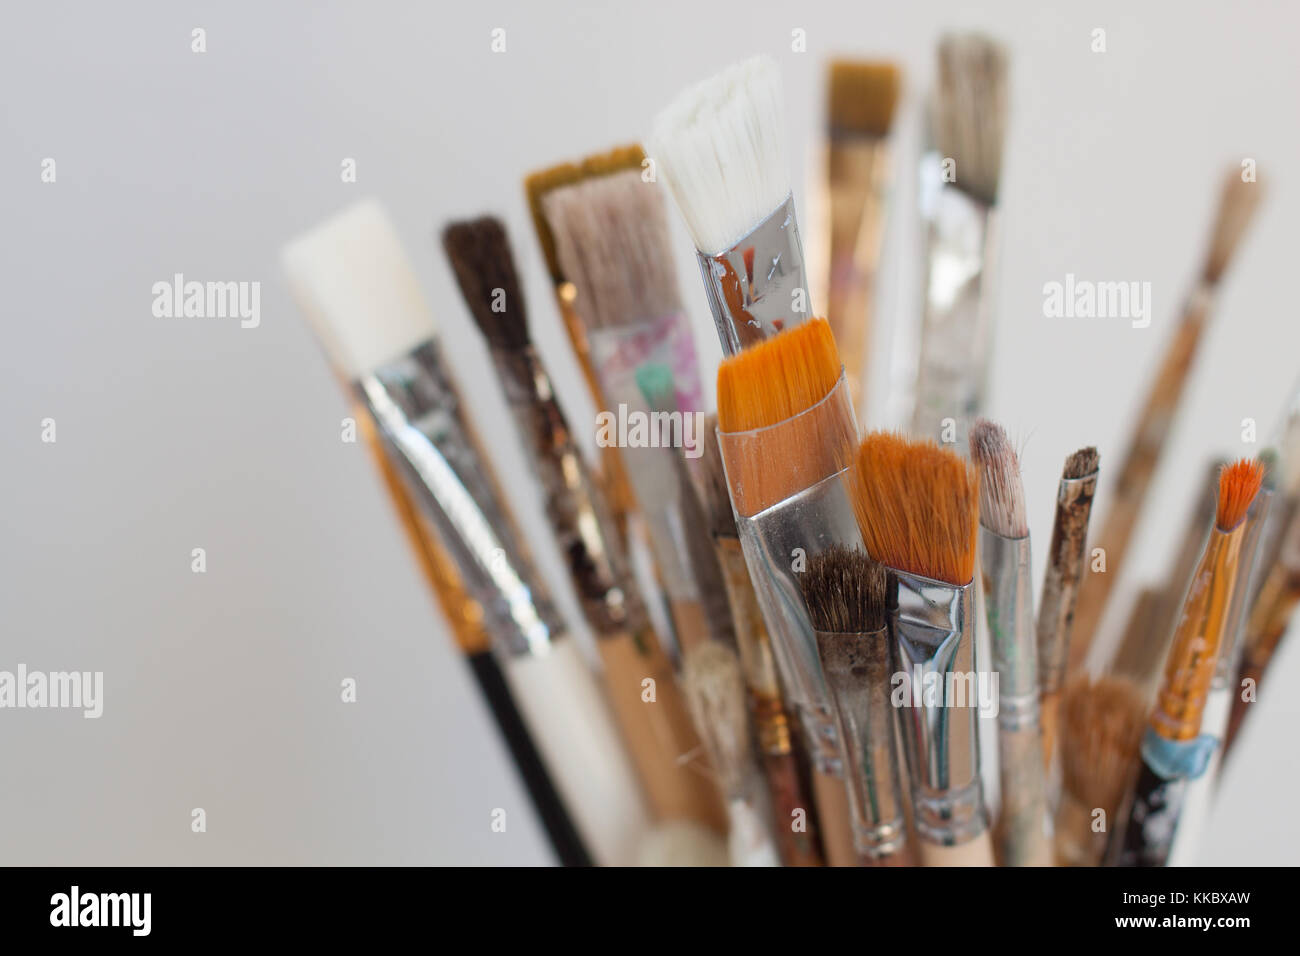 Artist's working brushes. Selective focus. With a copy space - Stock Image